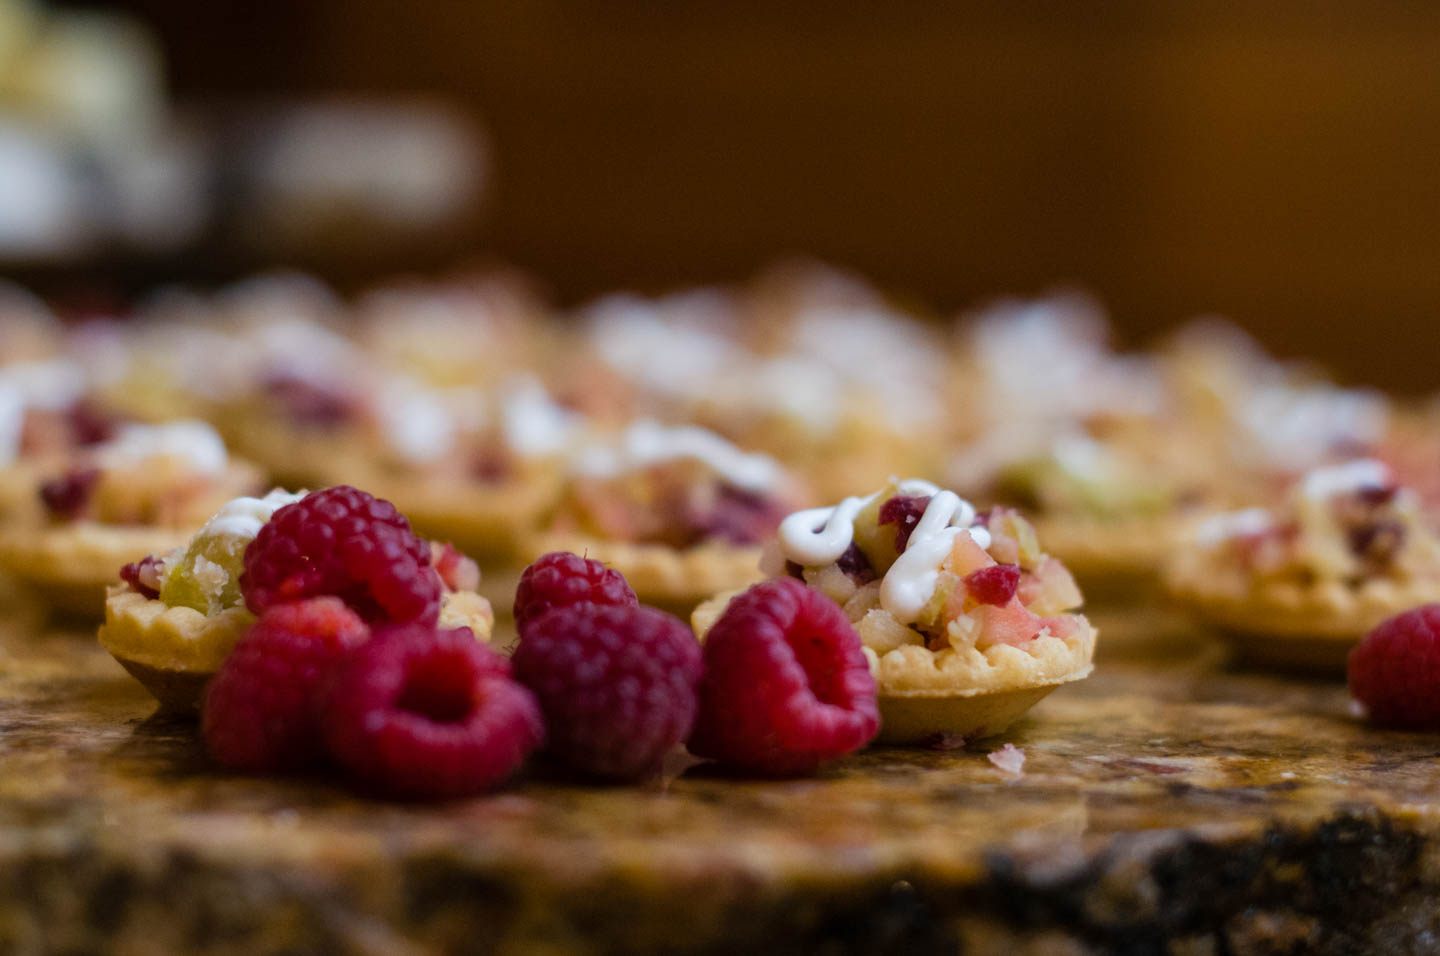 Raspberries and tarts